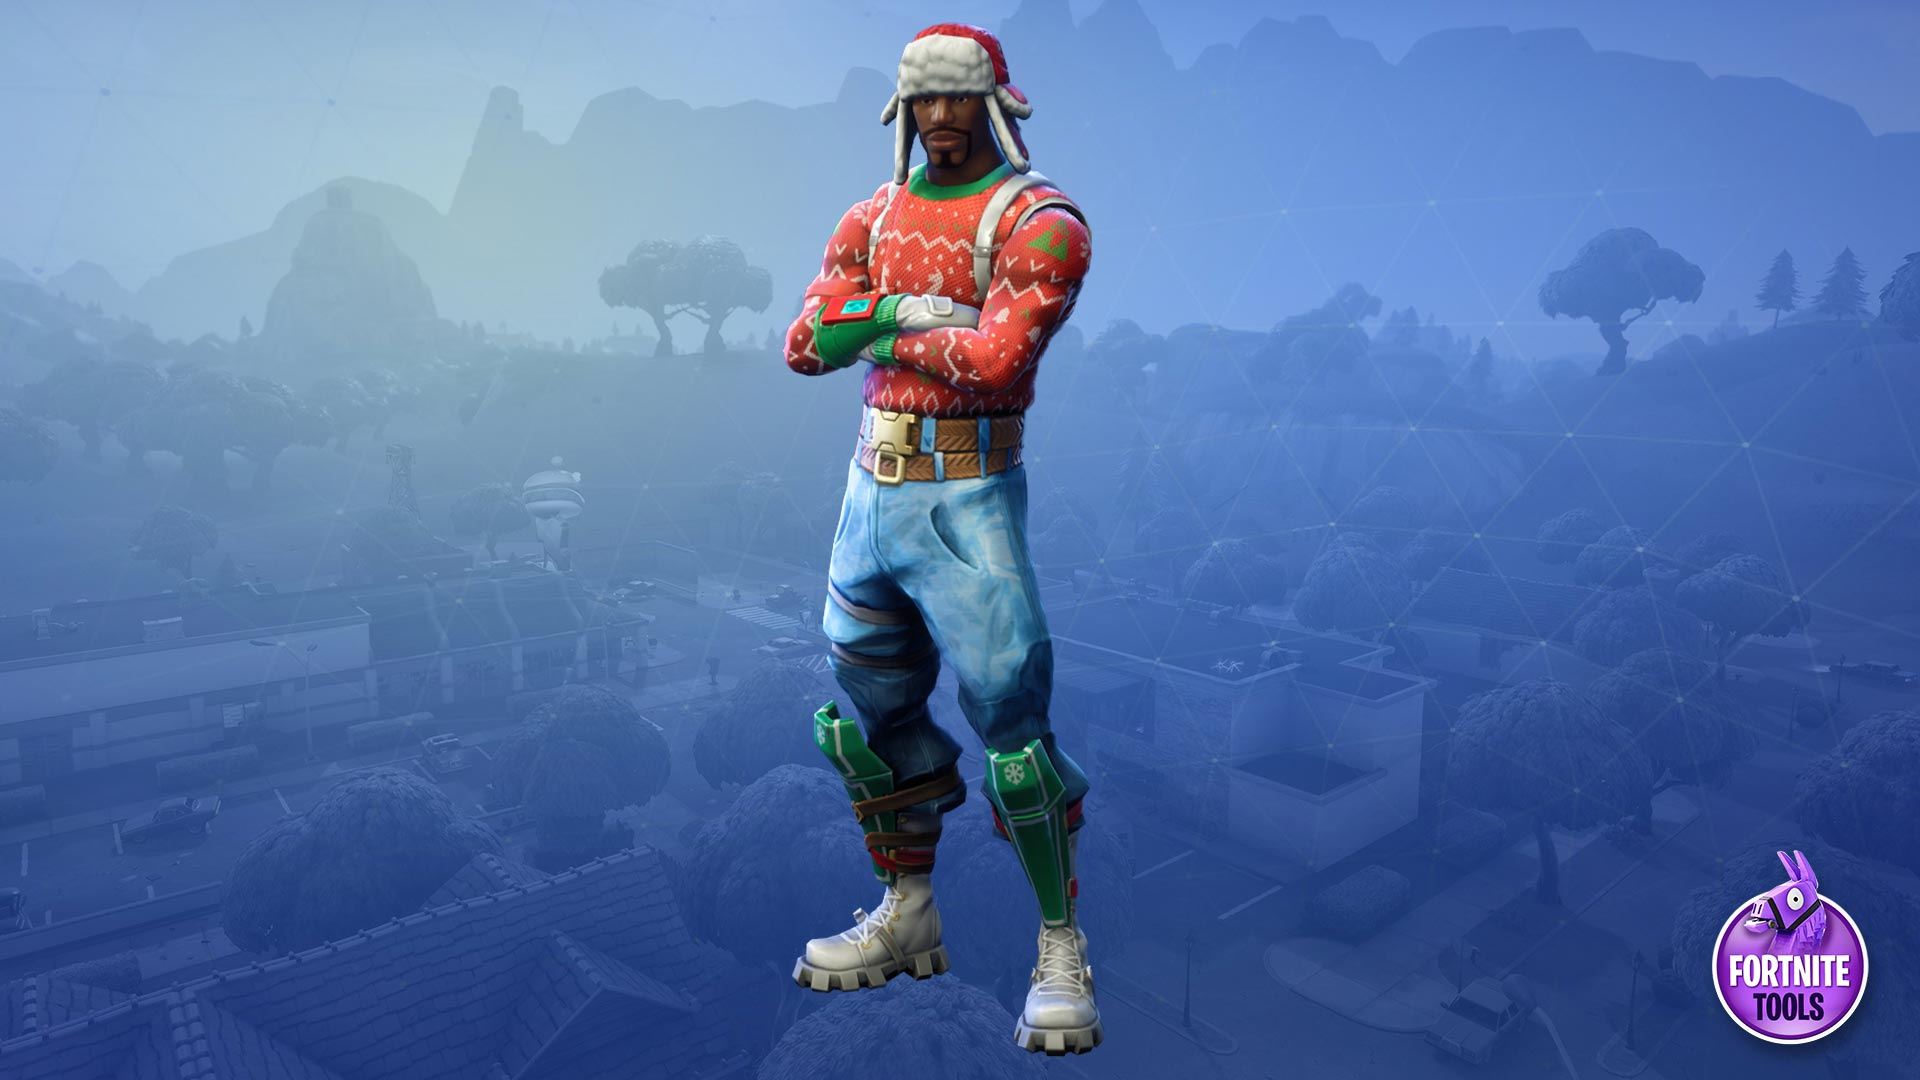 Fortnite Wallpaper Yuletide Ranger Latest HD Wallpaper 1920x1080